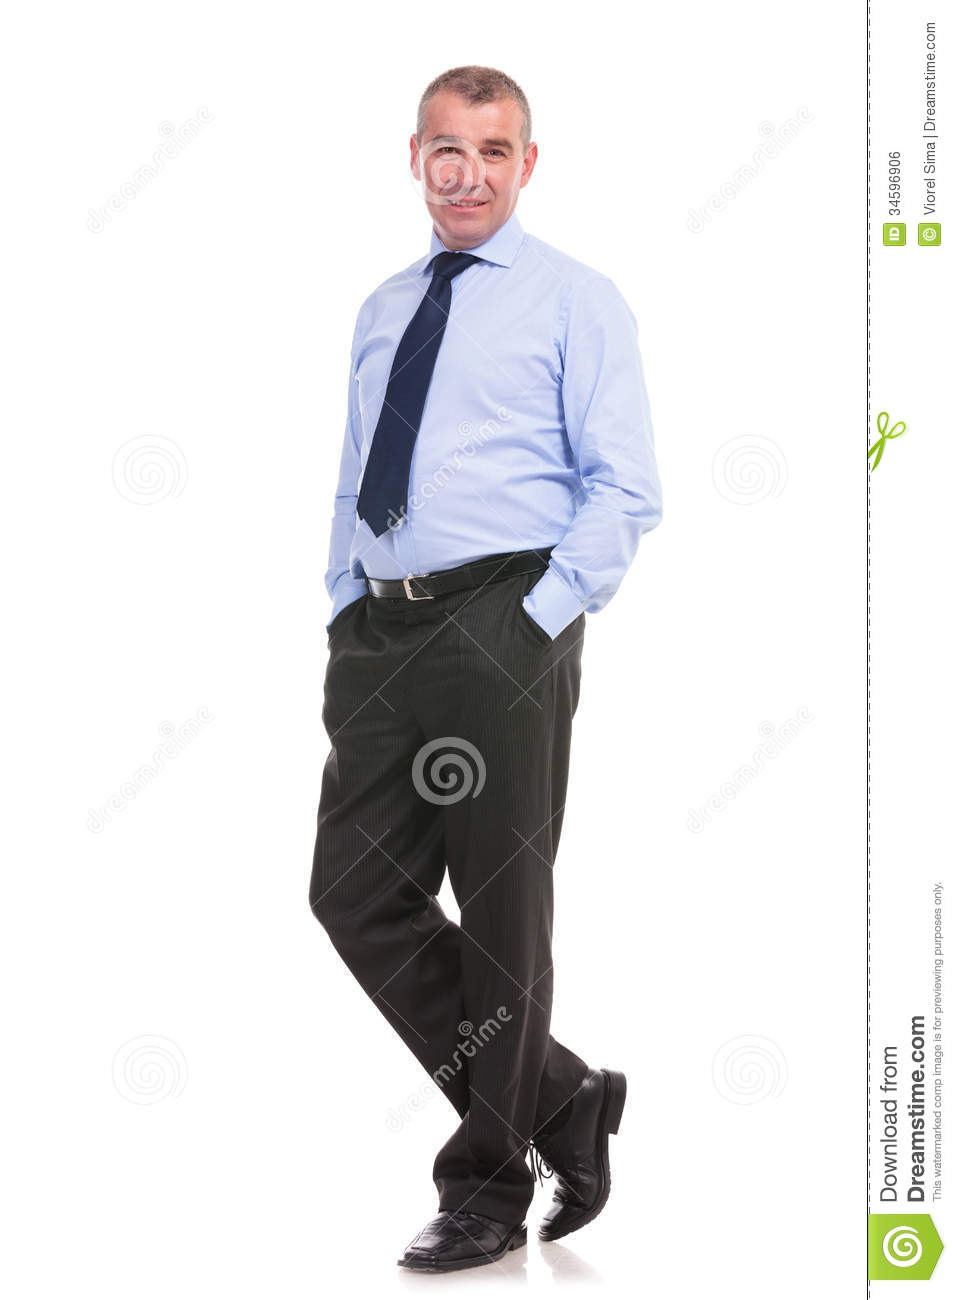 portrait-business-man-hands-pockets-full-length-picture-standing-his-his-front-looking-camera-white-34596906.jpg